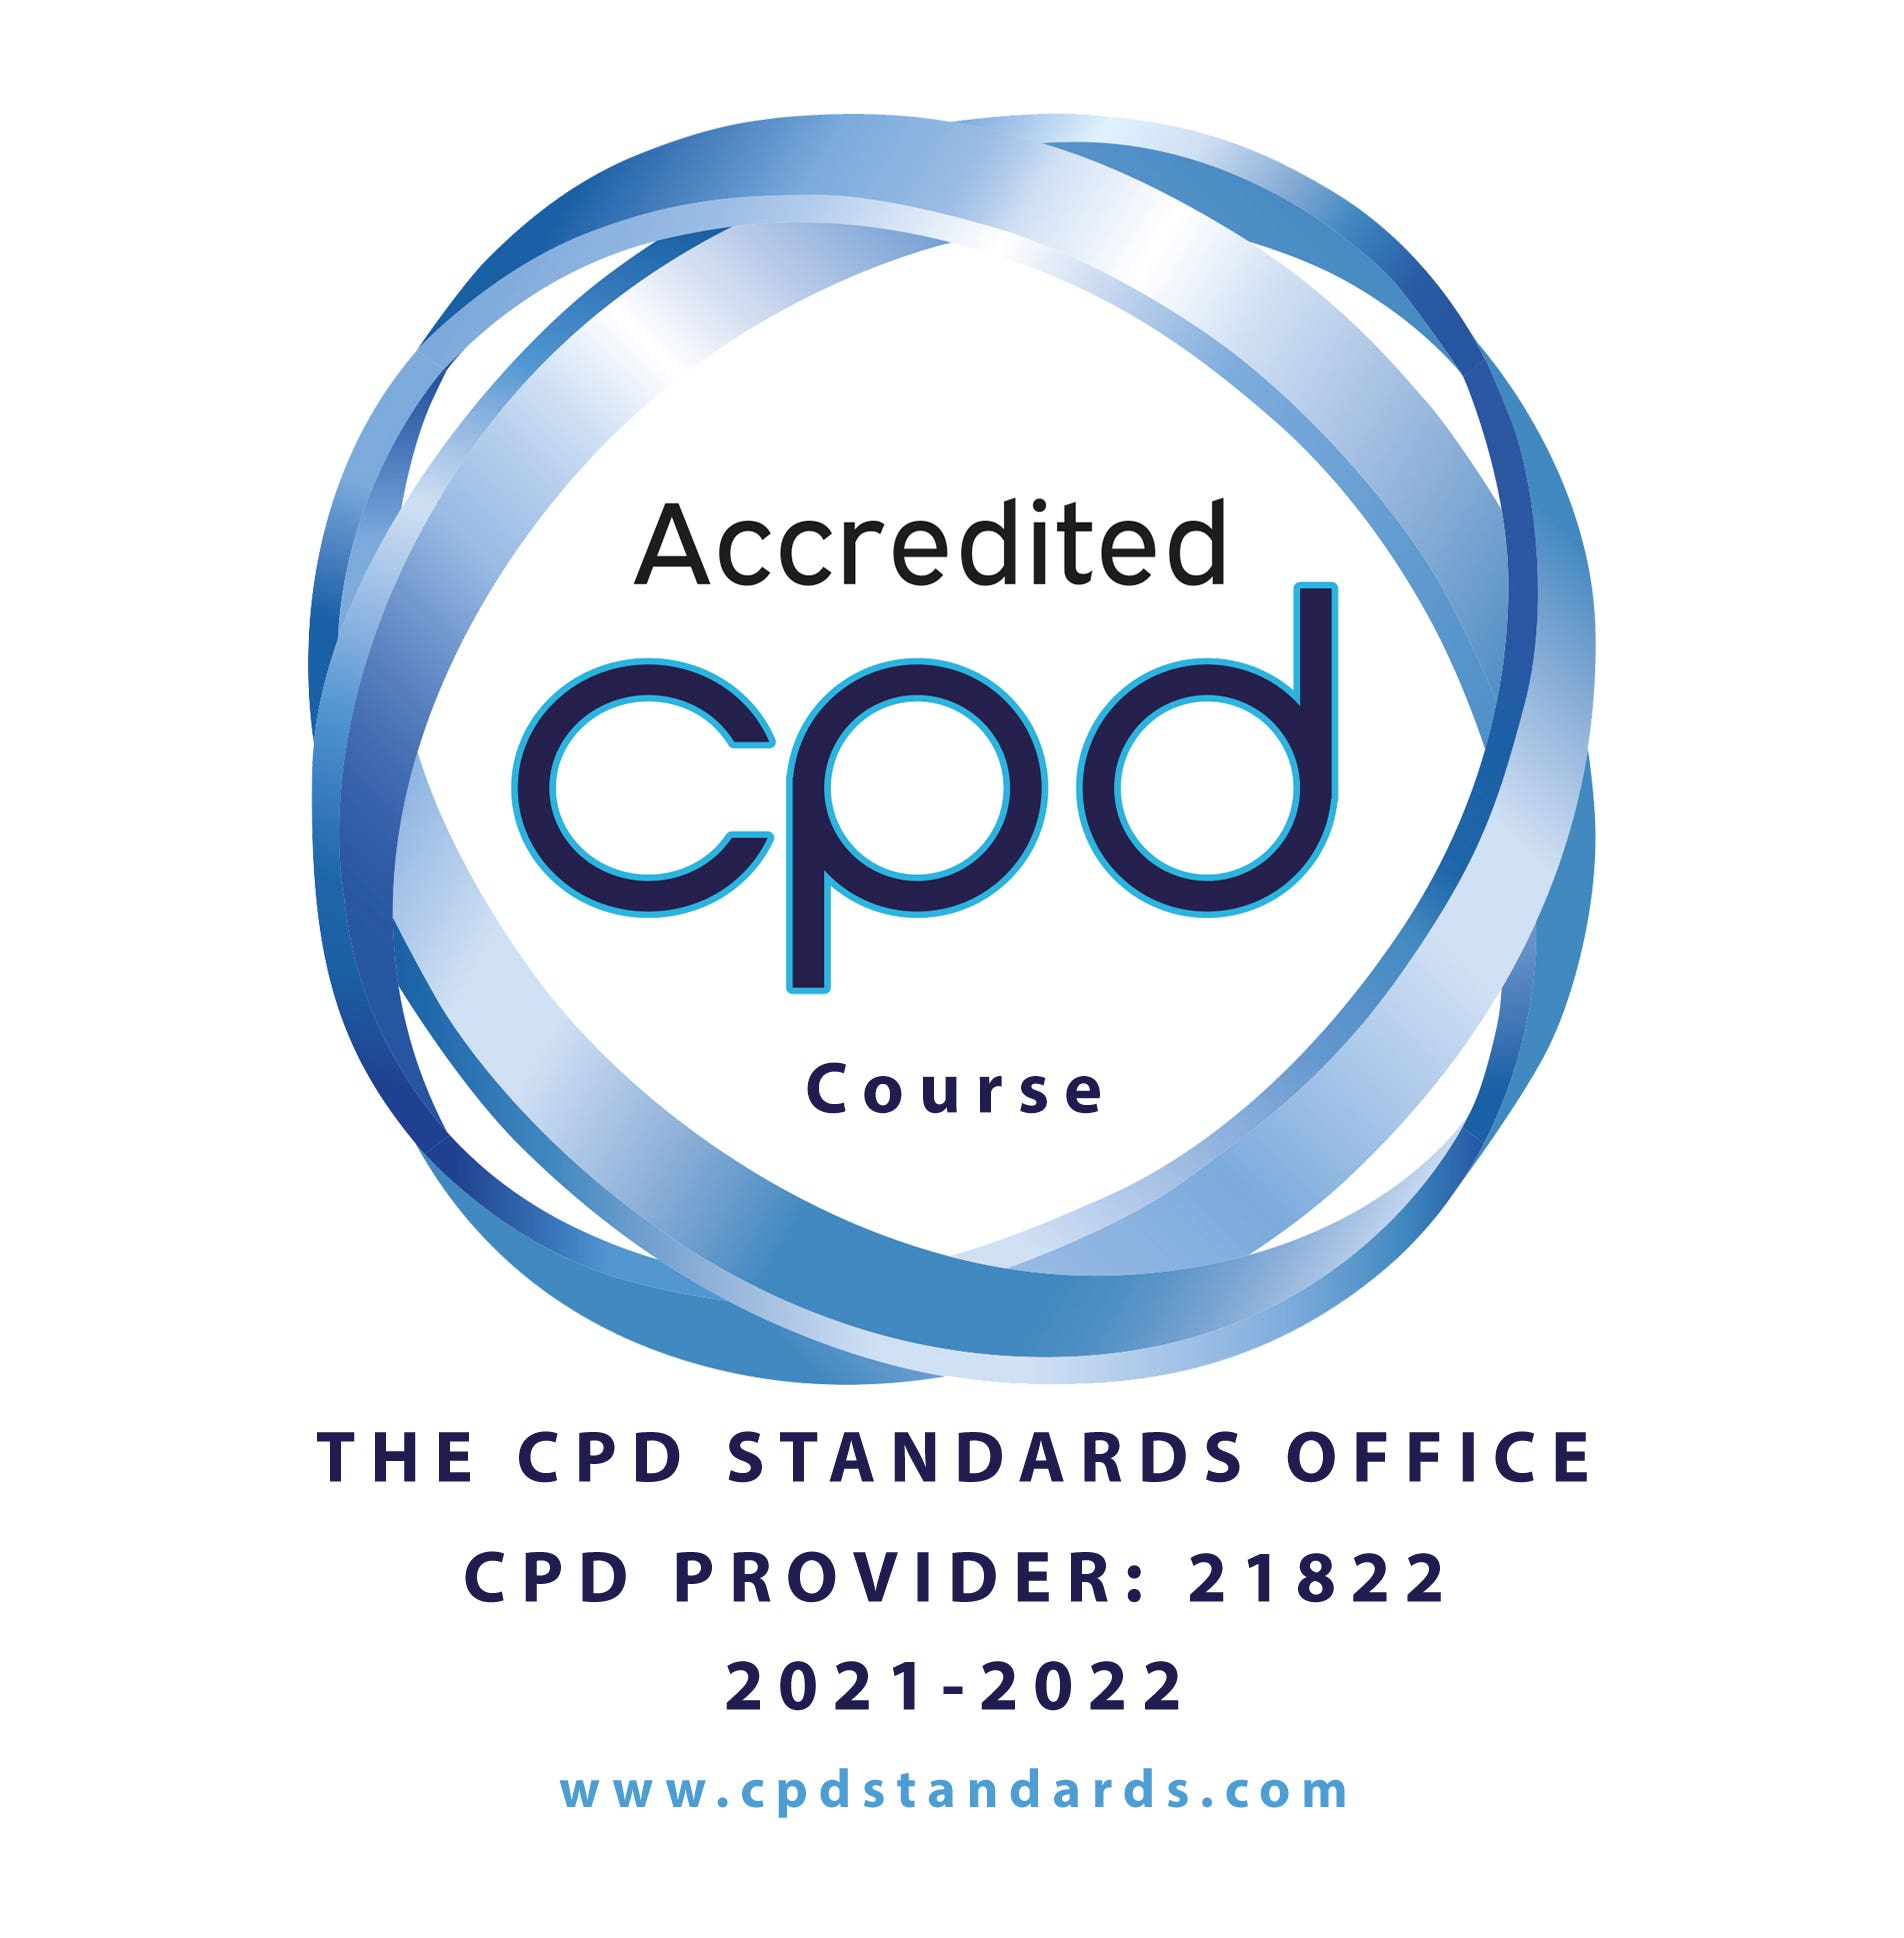 Accredited 5.5 hour CPD course